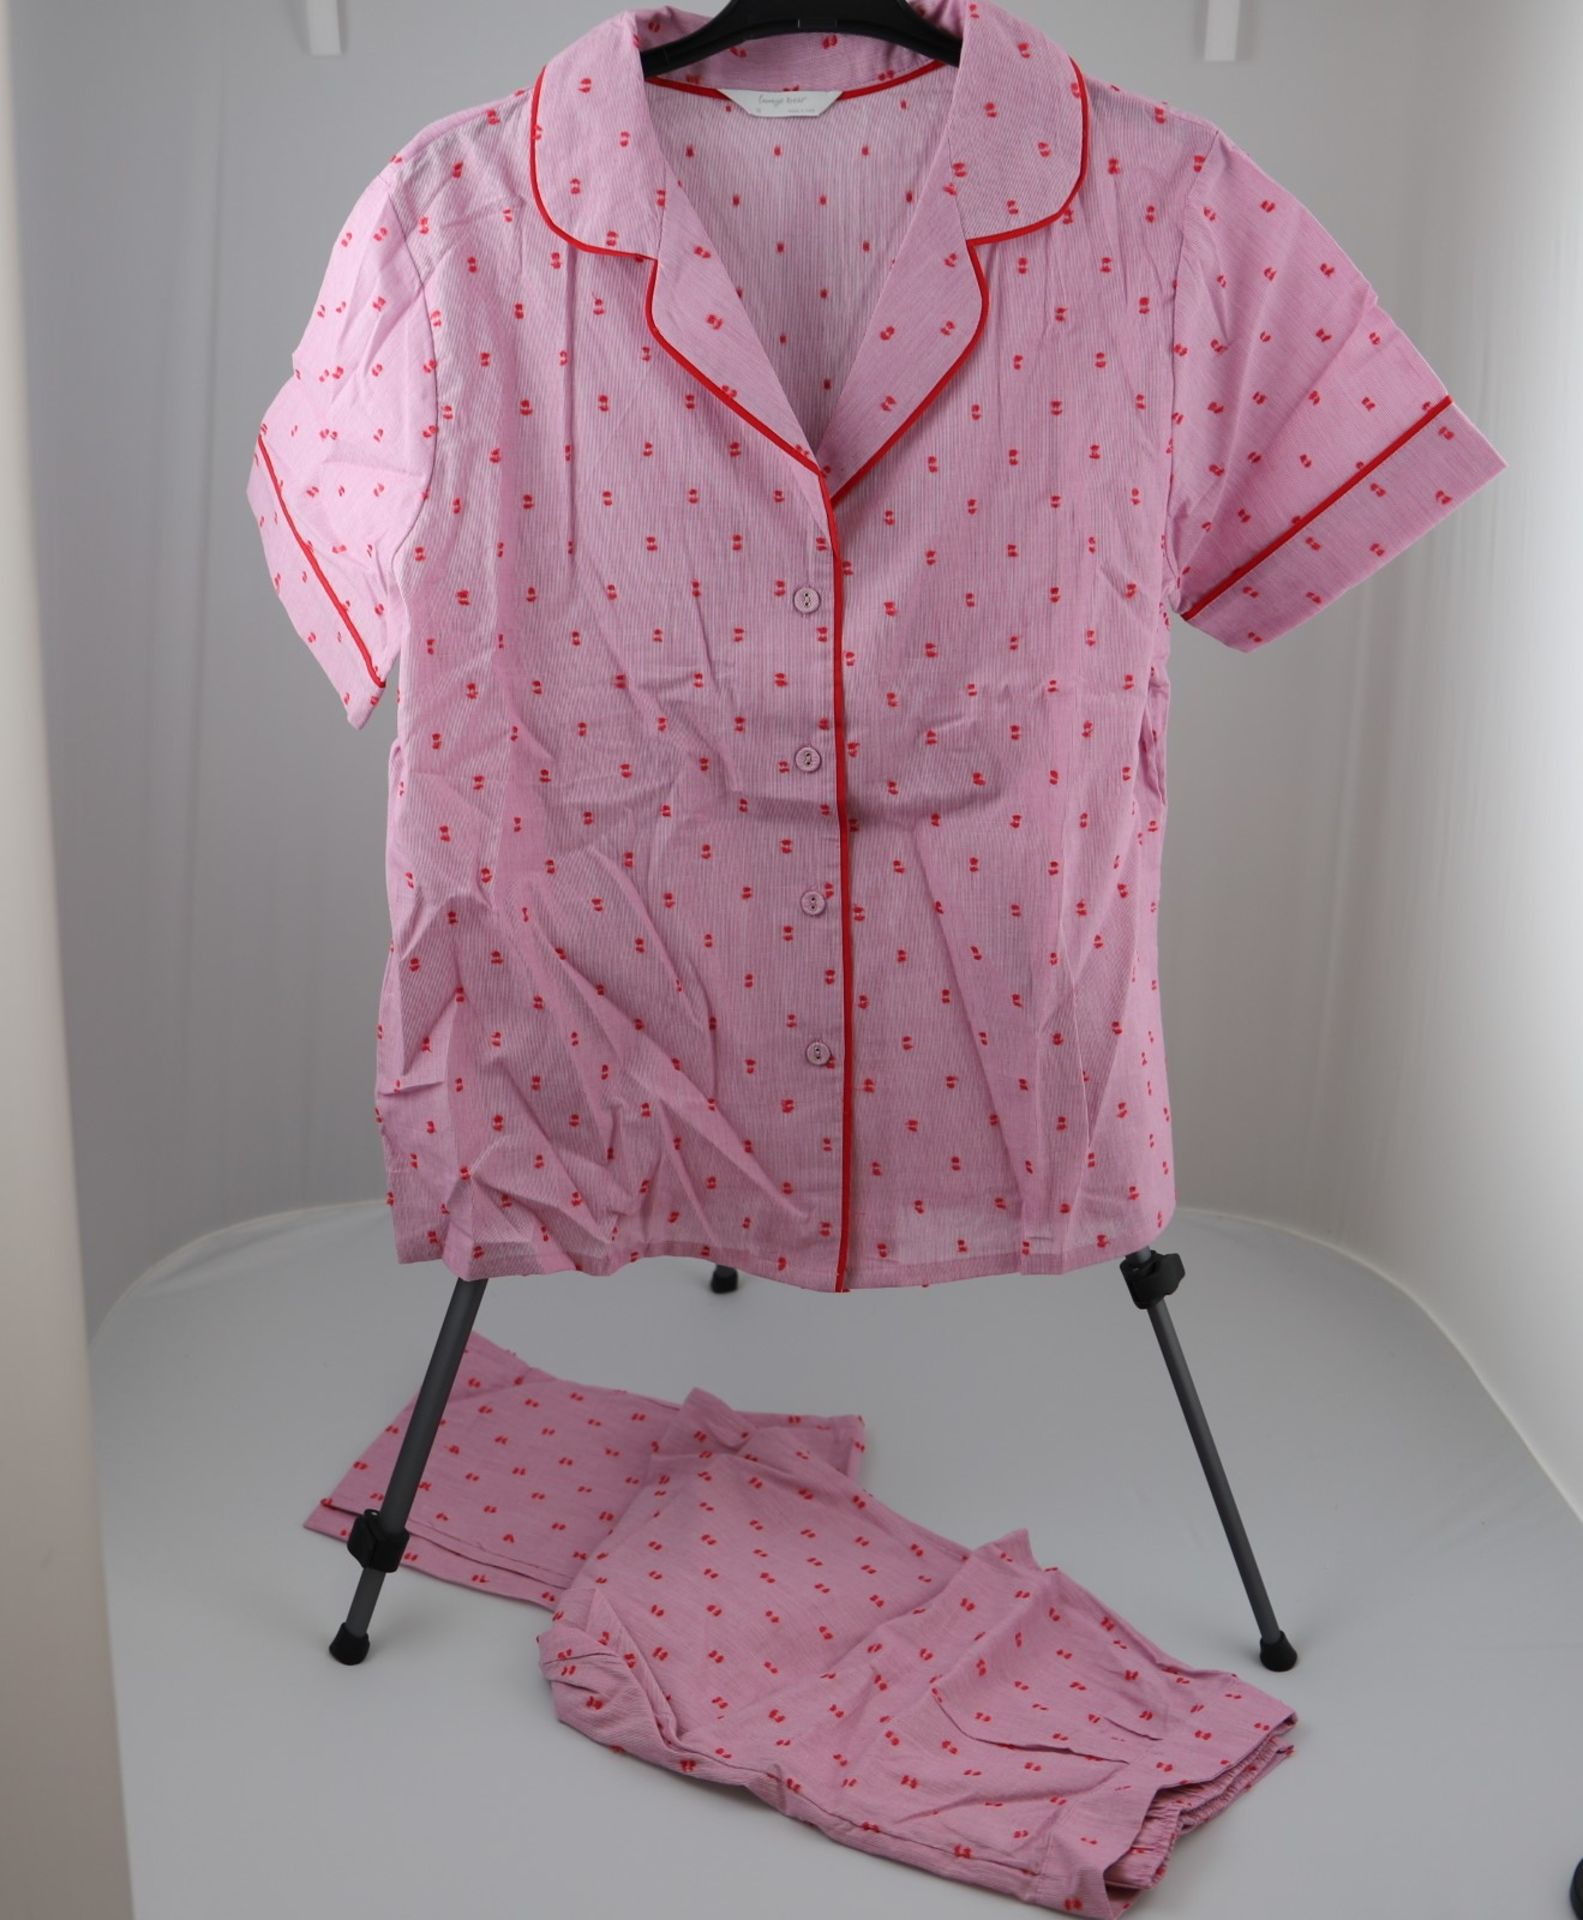 1 x mixed pallet = 148 items of Grade A M&S Lingerie. Approx Total RRP £3155 - Image 6 of 9